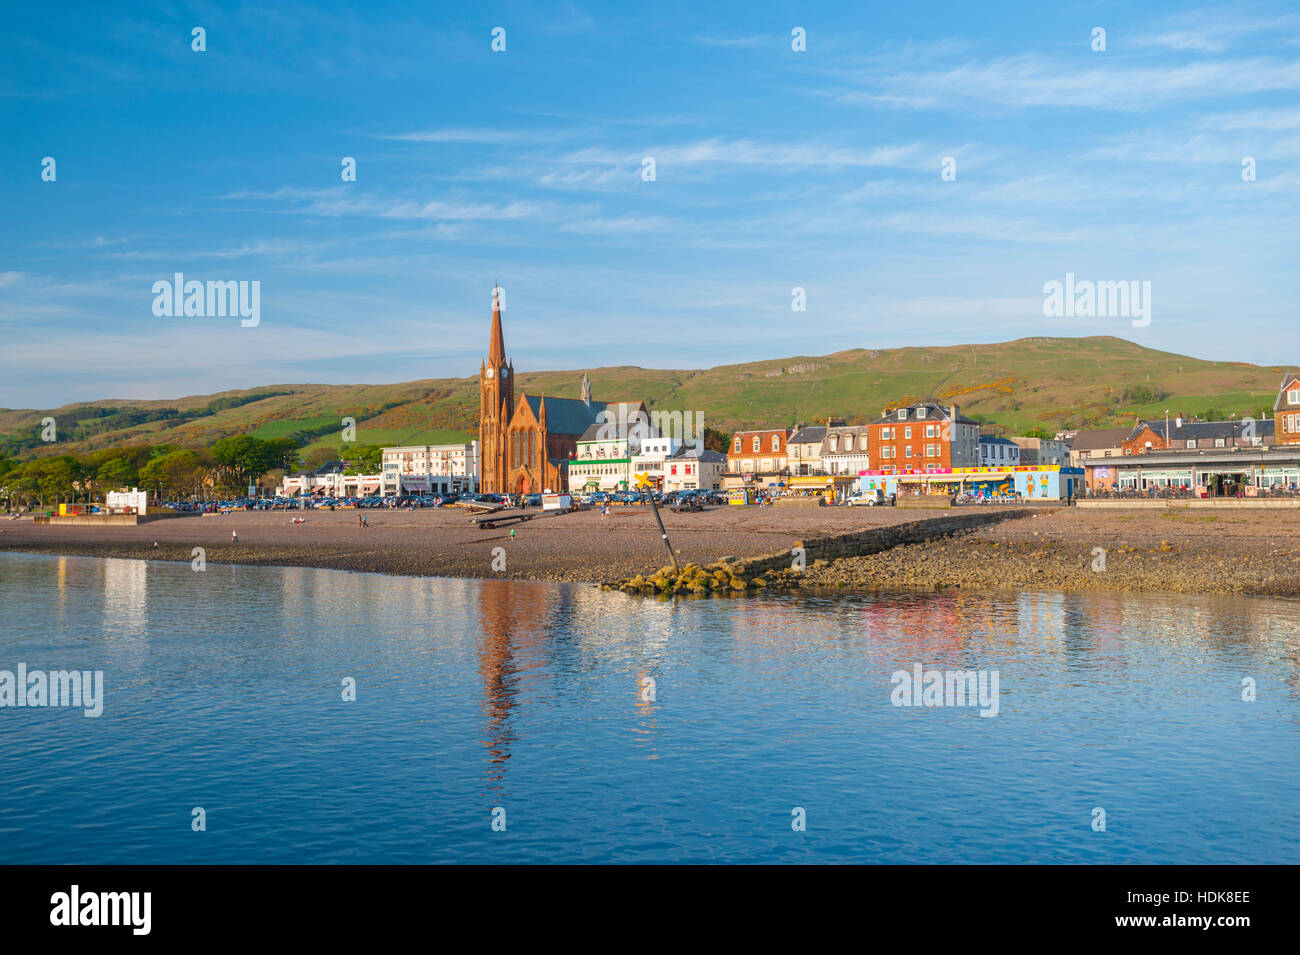 Largs on the Clyde coast Ayrshire. - Stock Image